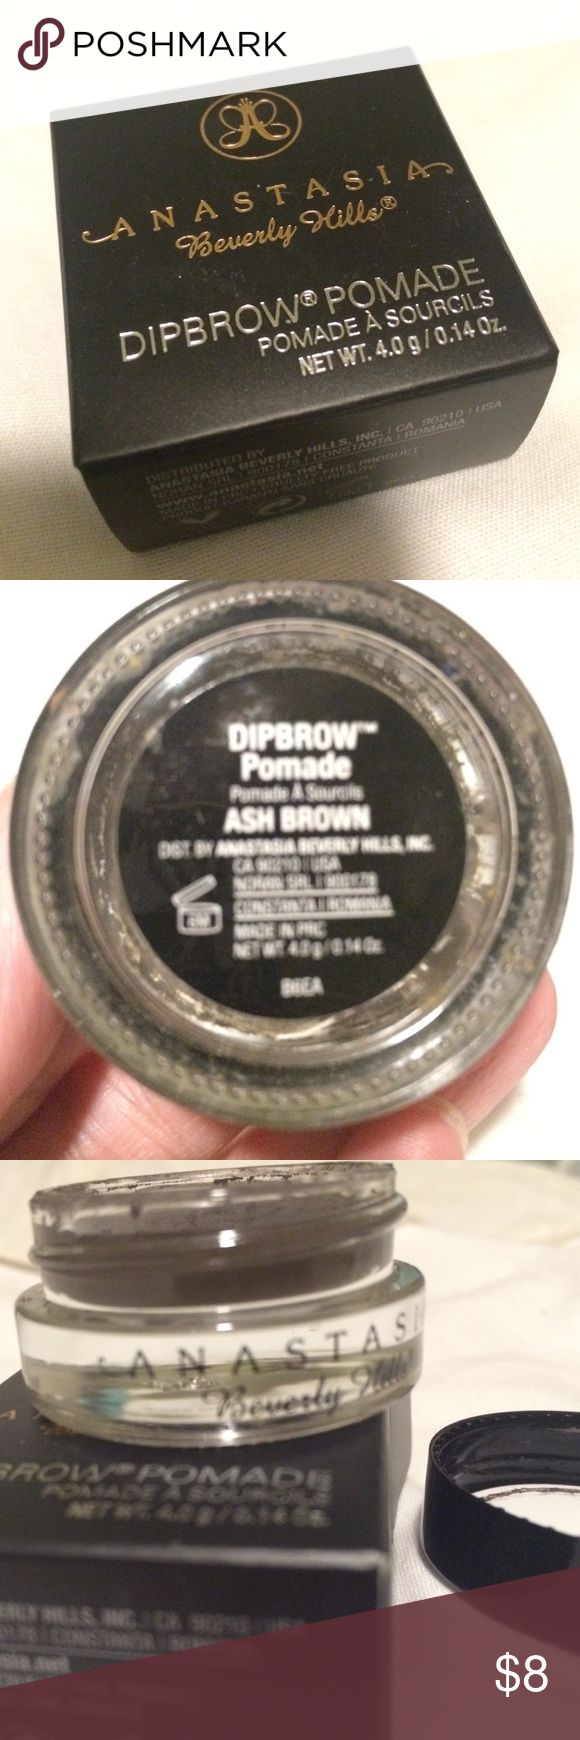 Anastasia Beverly Hills Dipbrow Pomade - ASH BROWN I purchased this & it turned out to be too dark for my eyebrow color. Only been used twice. ***99% of the product is left!  Color: ASH BROWN Anastasia Beverly Hills Makeup Eyebrow Filler